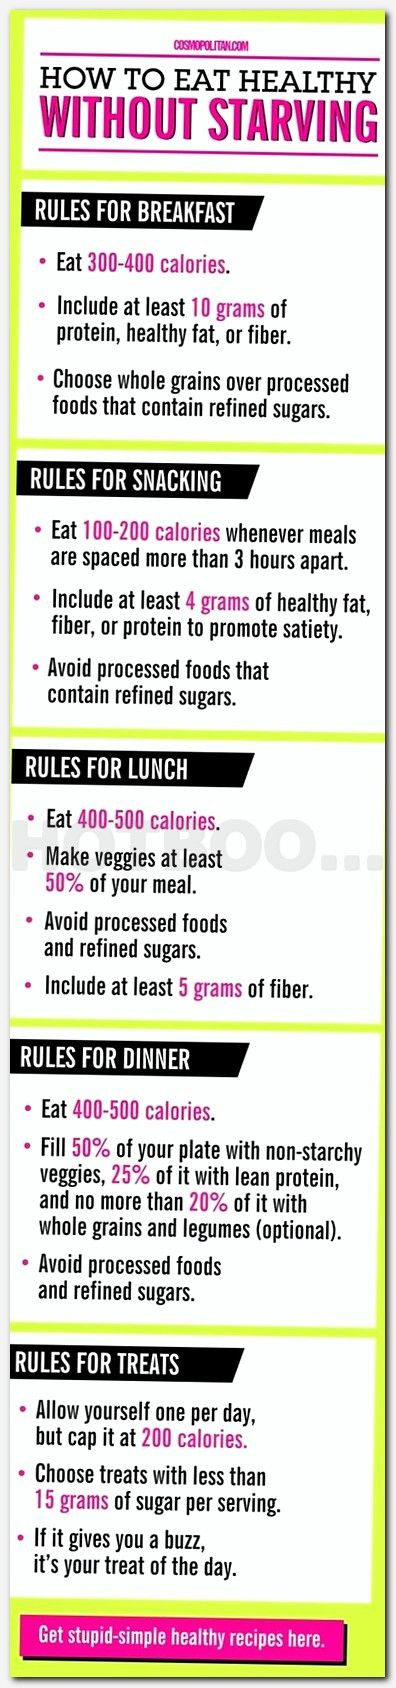 Gm diet plan gm diet works image 10